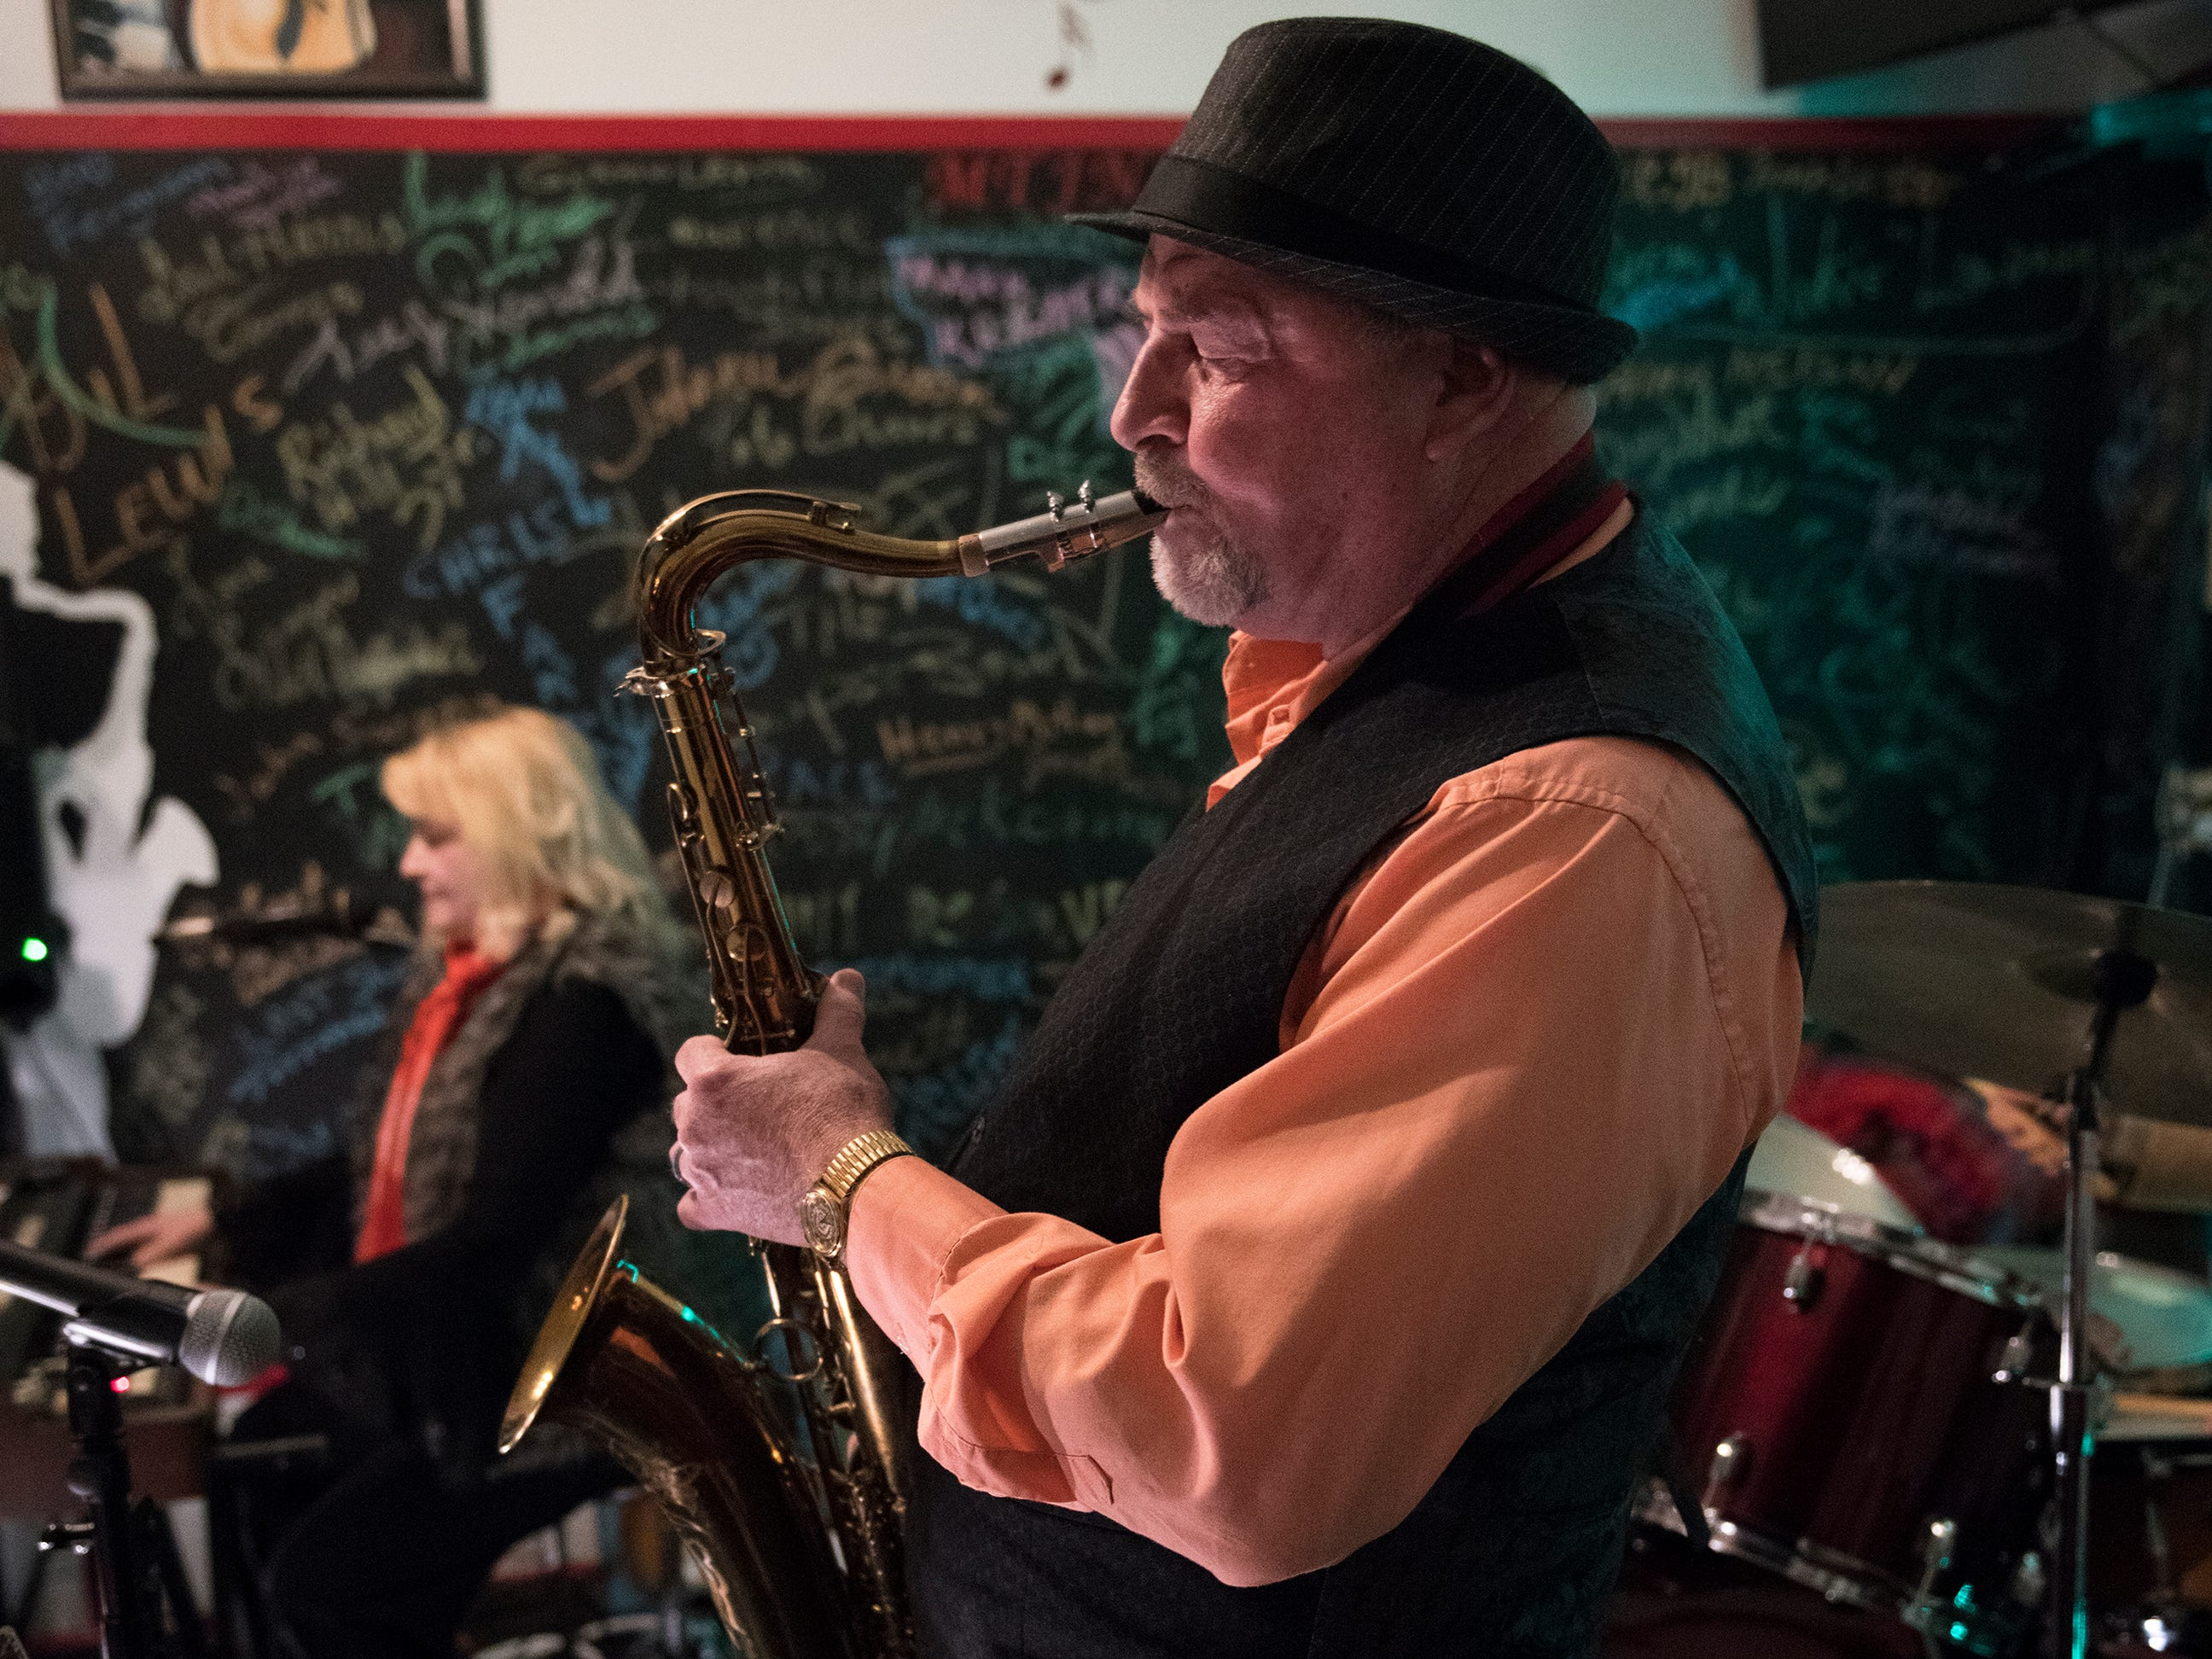 Jazz musicians Bonnie Bennett of Atlantic City, left, and Dave Dowell of Atco perform at May the Jazz Never Stop Jazz Cafe in Haddon Heights.